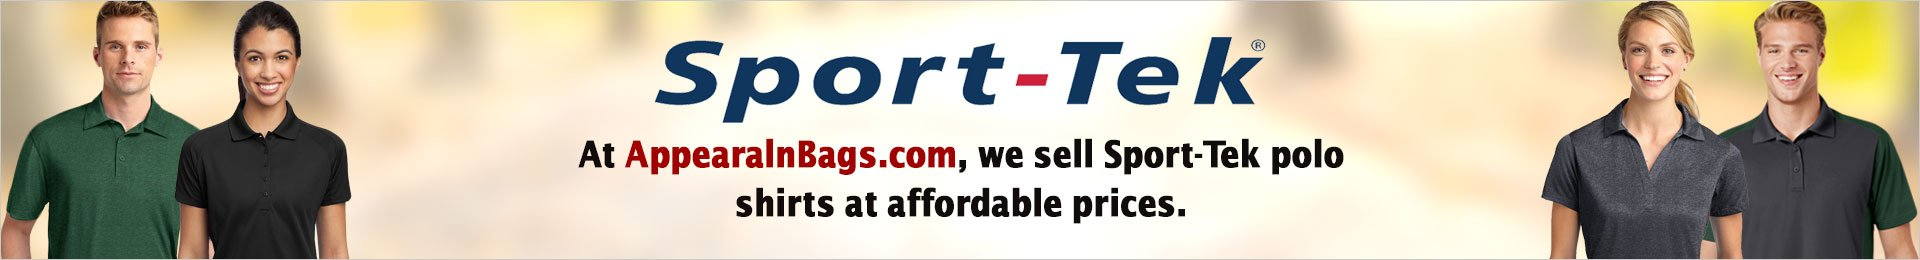 Sport-Tek Polo And Sports Shirts